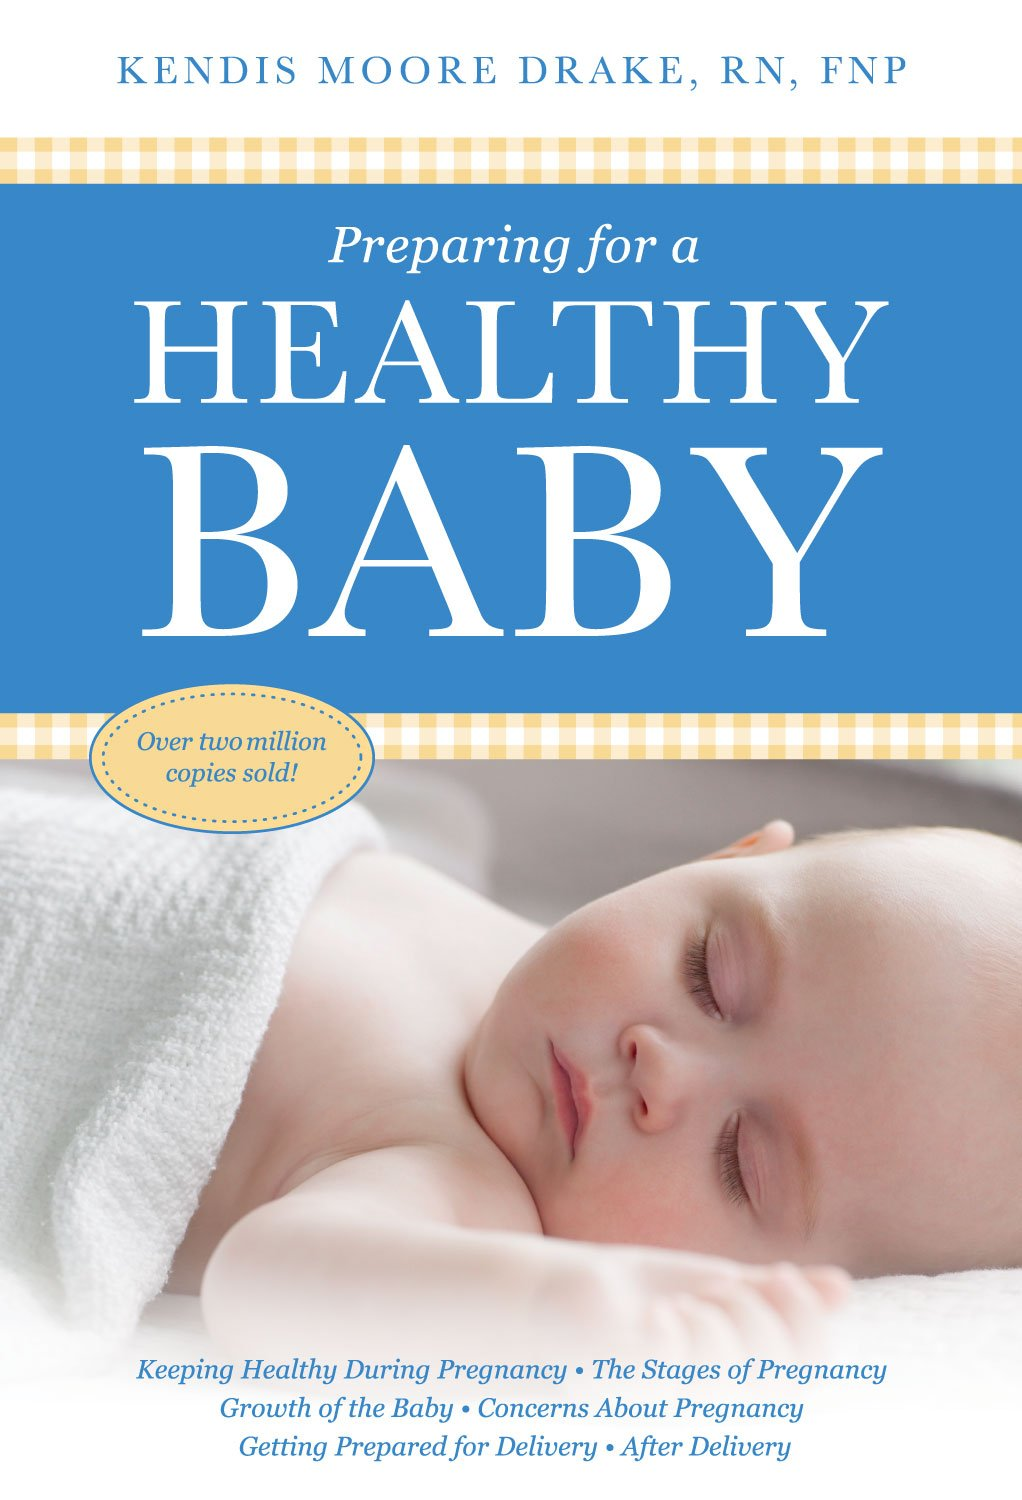 Preparing for a Healthy Baby: A Pregnancy Book eBook: Drake, Kendis Moore:  Amazon.co.uk: Kindle Store